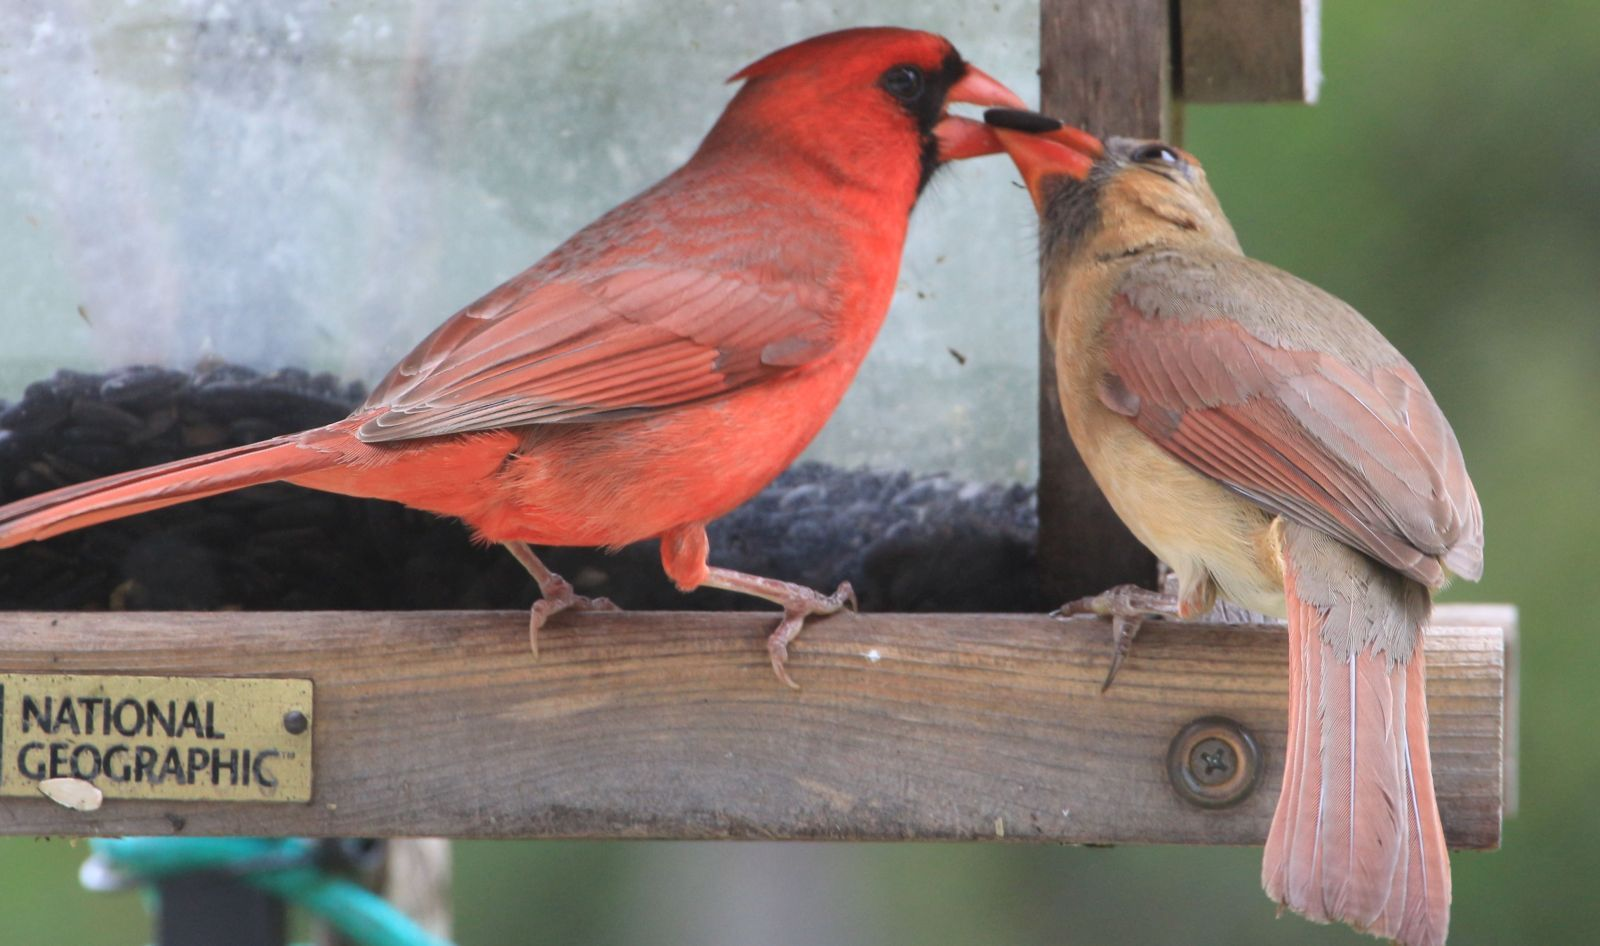 Male cardinal feeding a sunflower seed to his mate